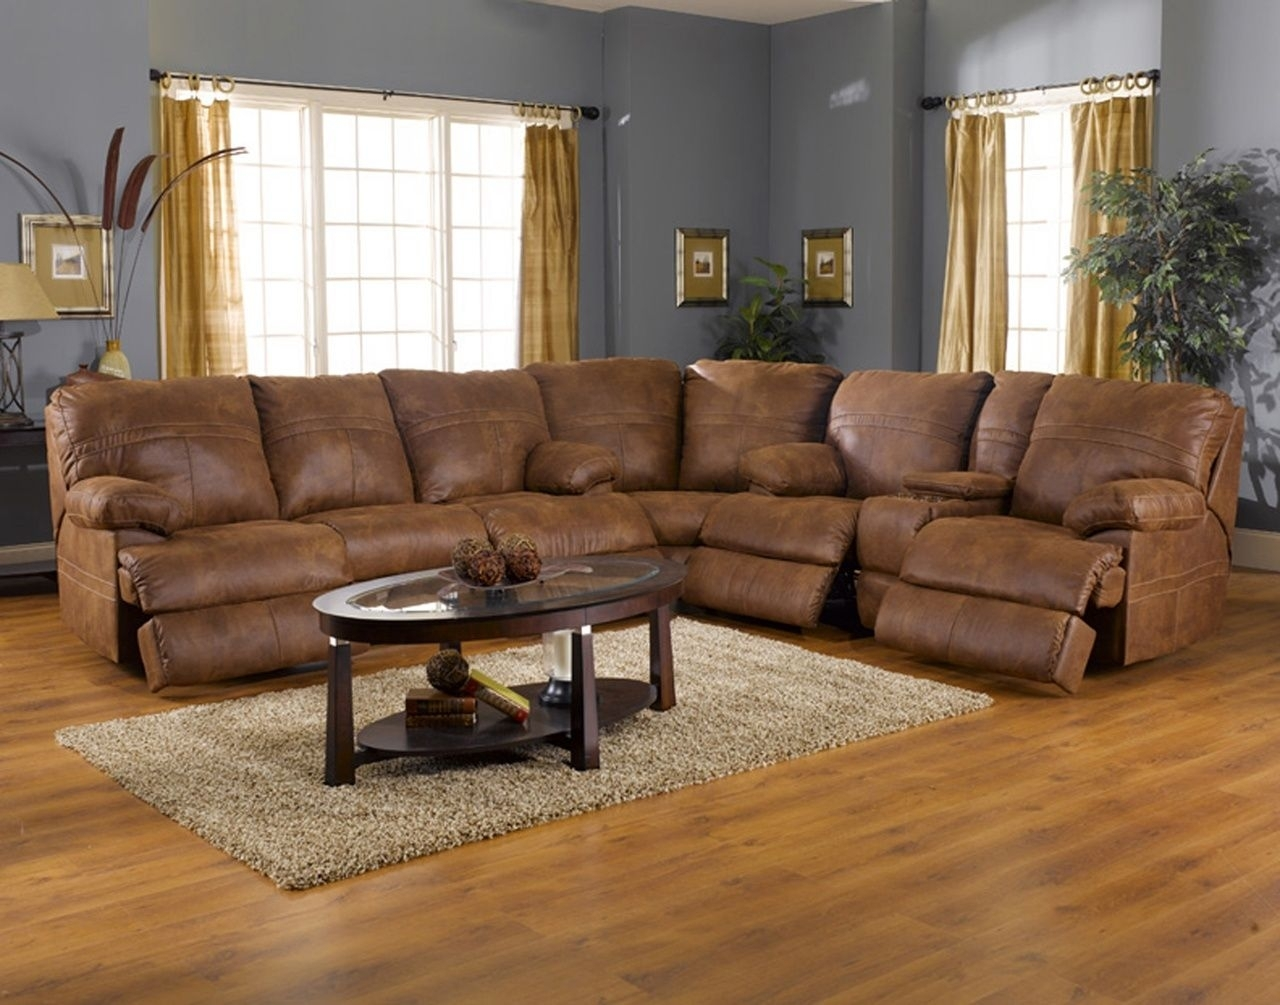 The Best Elegant Leather Sectional Sofa With Recliner Office Ideas Pertaining To Sectional Sofas With Recliners Leather (Image 10 of 10)